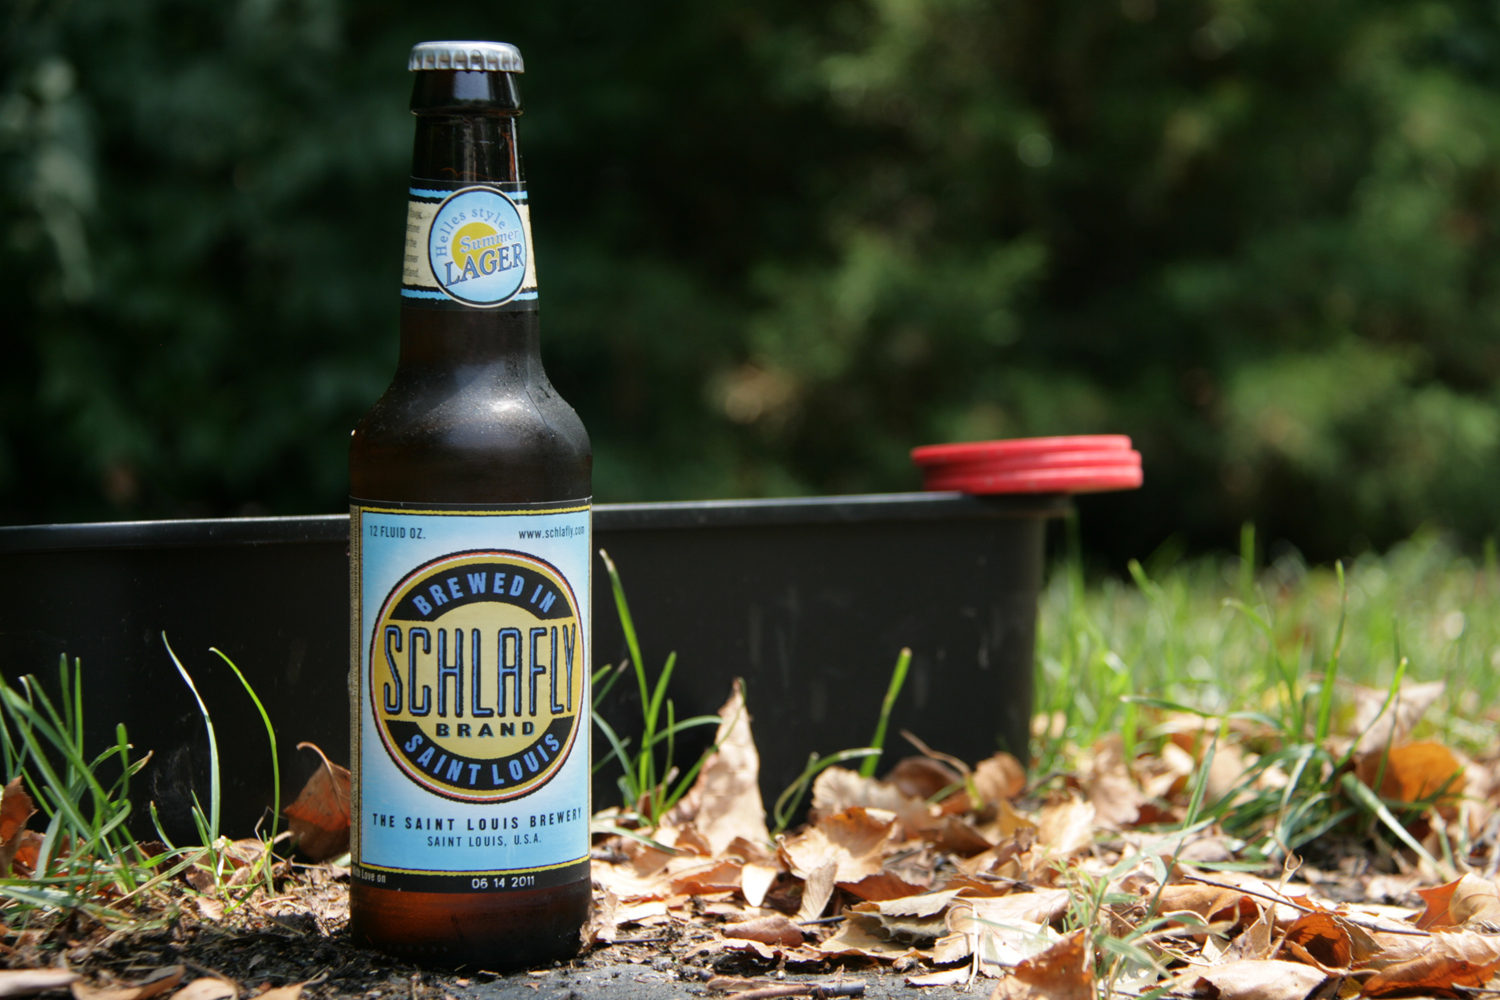 Schlafly summer beer is a tasty helles-style lager.